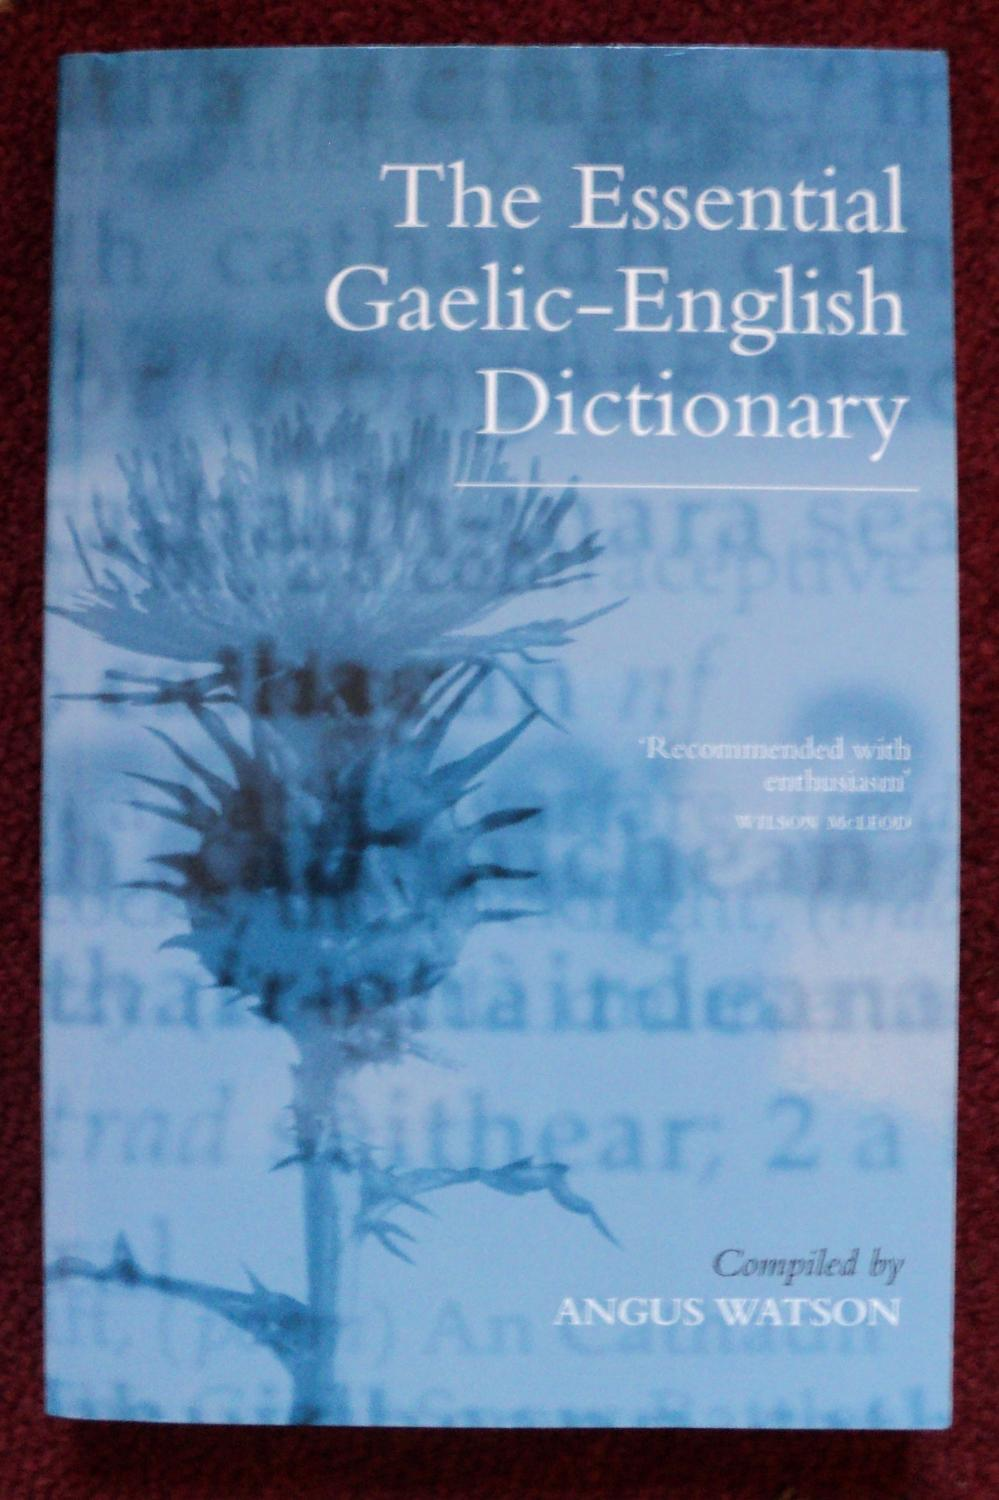 The Essential Gaelic-English Dictionary: A Dictionary for Students and  Learners of Scottish Gaelic